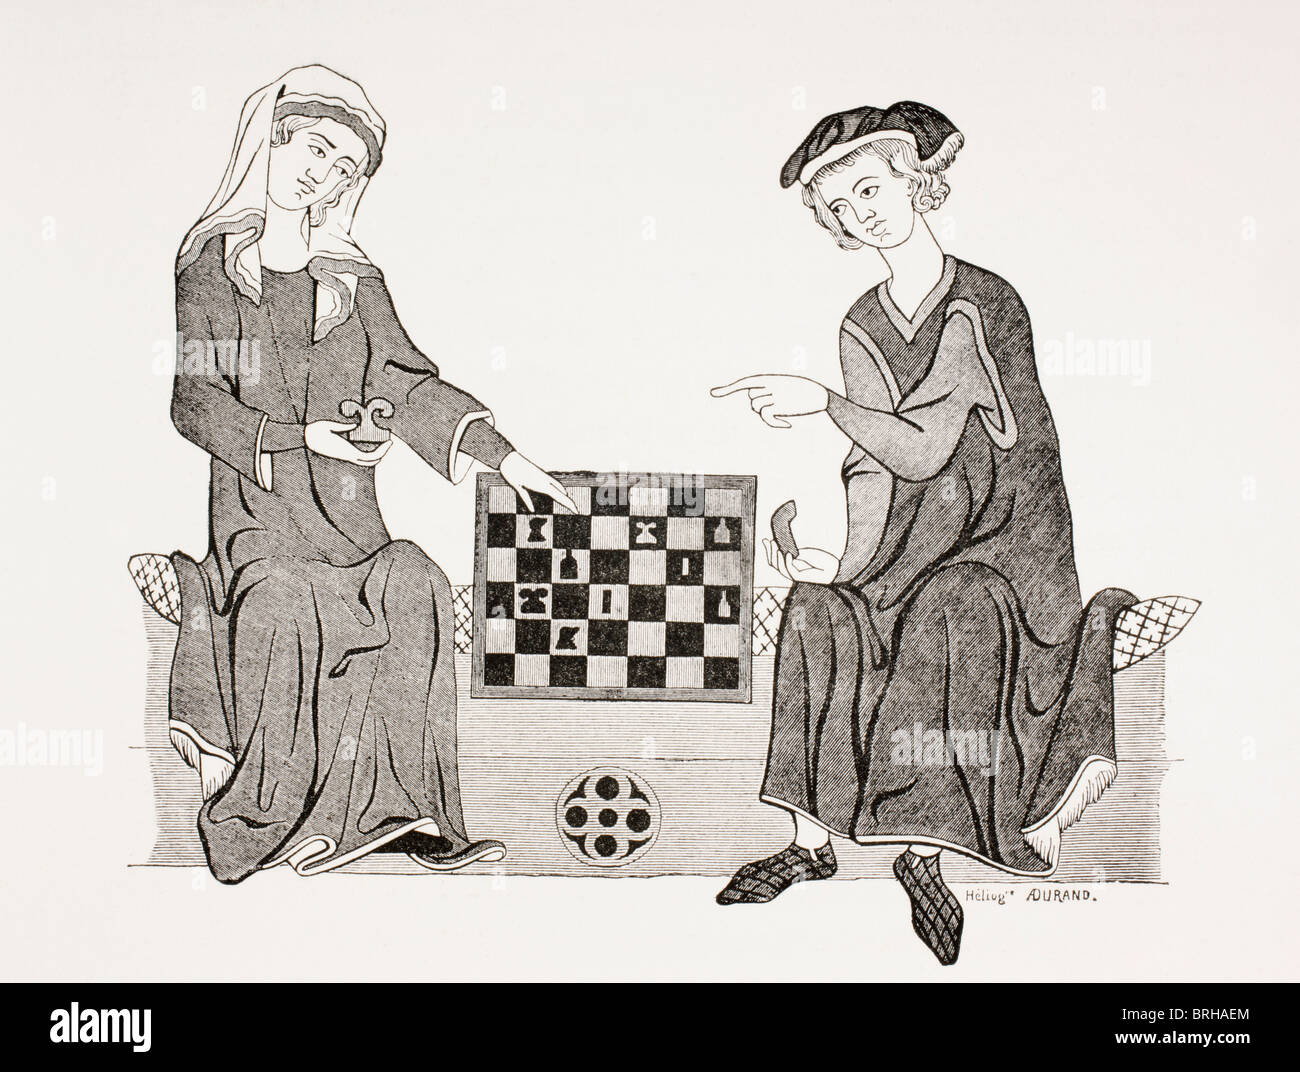 Othon IV, Marquis of Brandebourg, 1238 - 1308, playing chess with his wife Hedwige de Habsbourg. - Stock Image